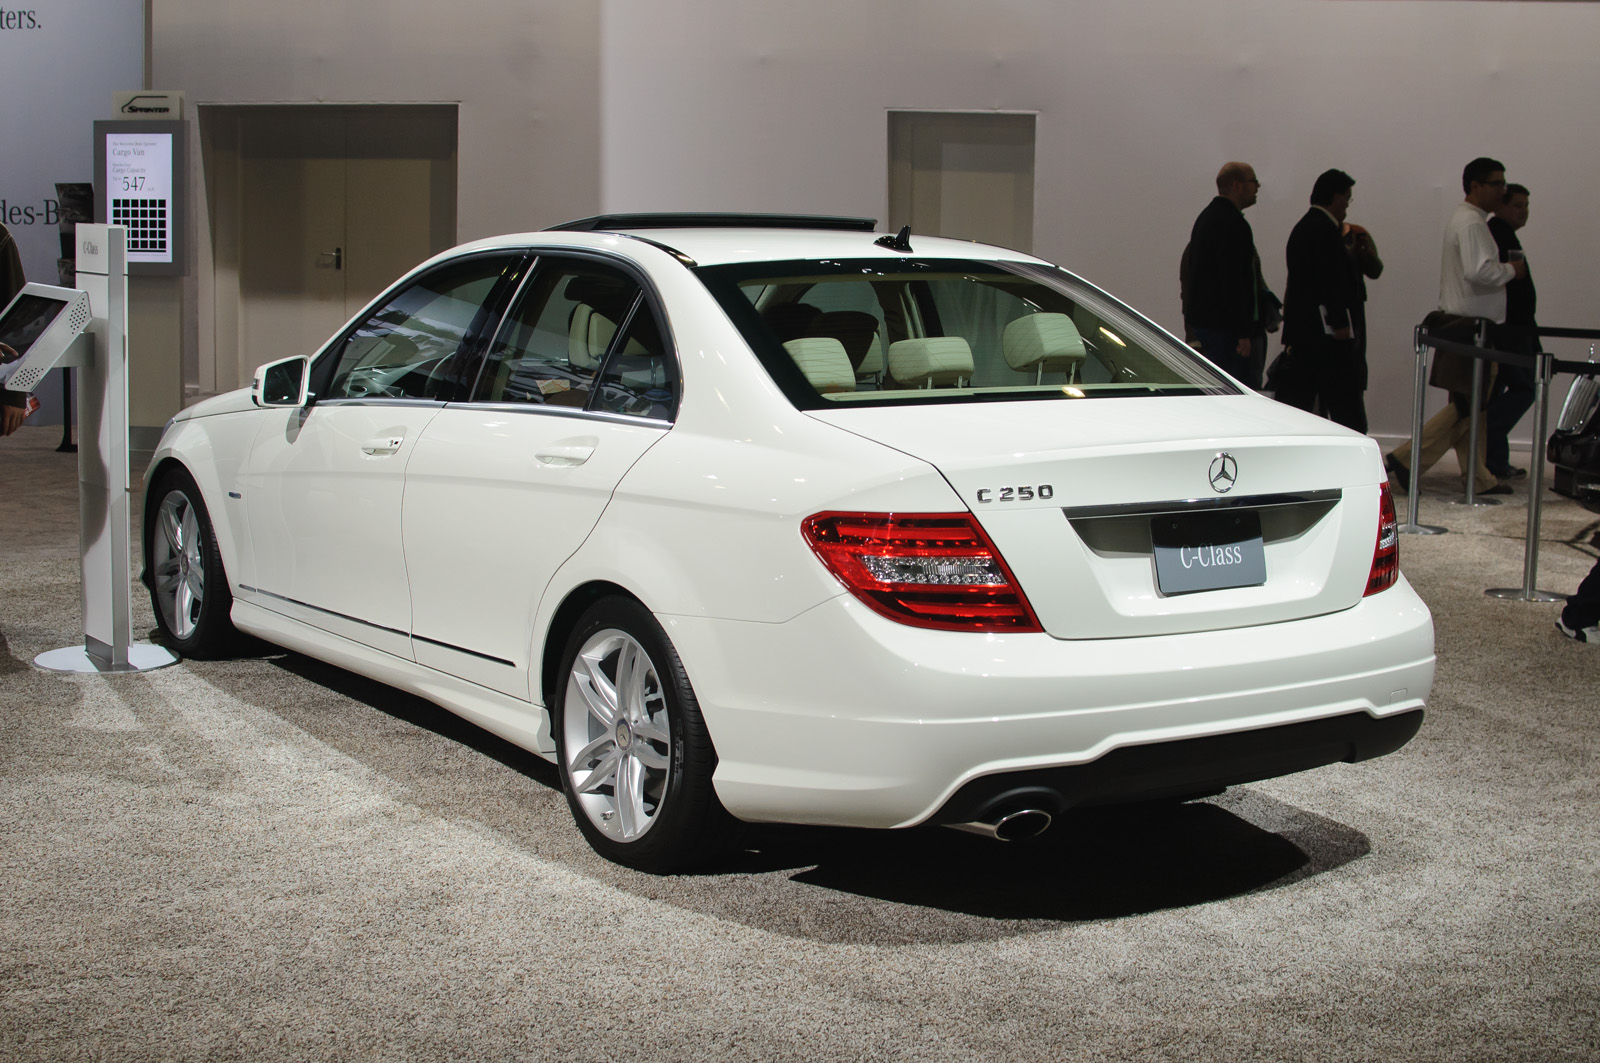 Mercedes Benz C250 2010 Review Amazing Pictures And